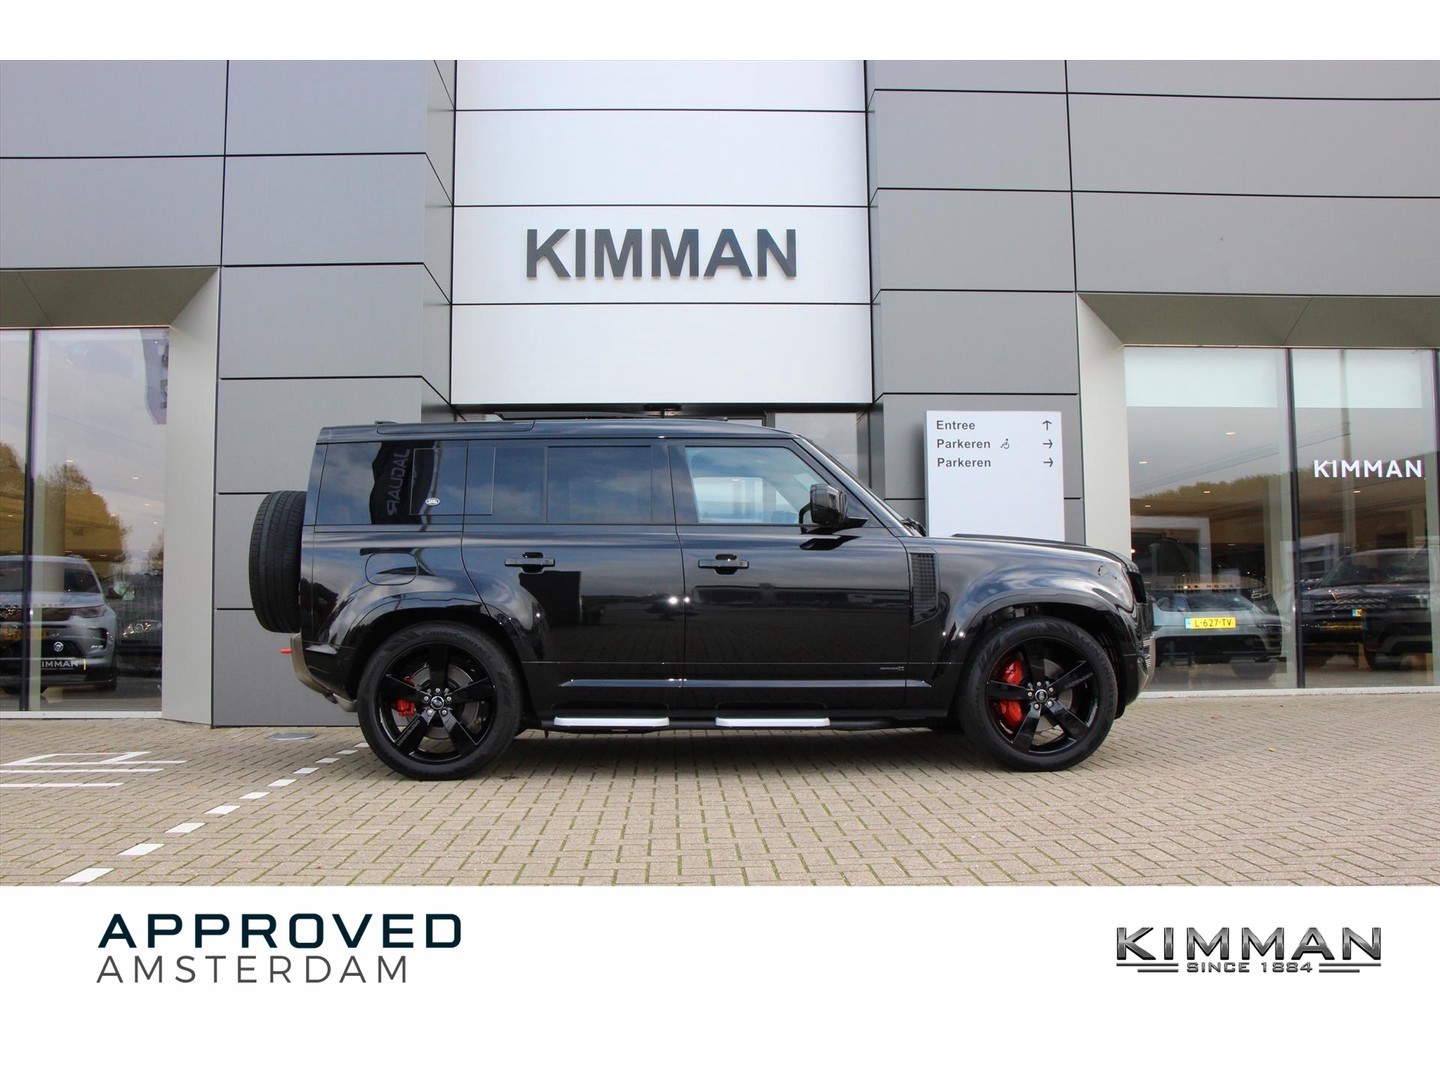 Land rover Defender 110 p400 3.0 i6 ** x ** 22 inch i tow pack i np 170.000